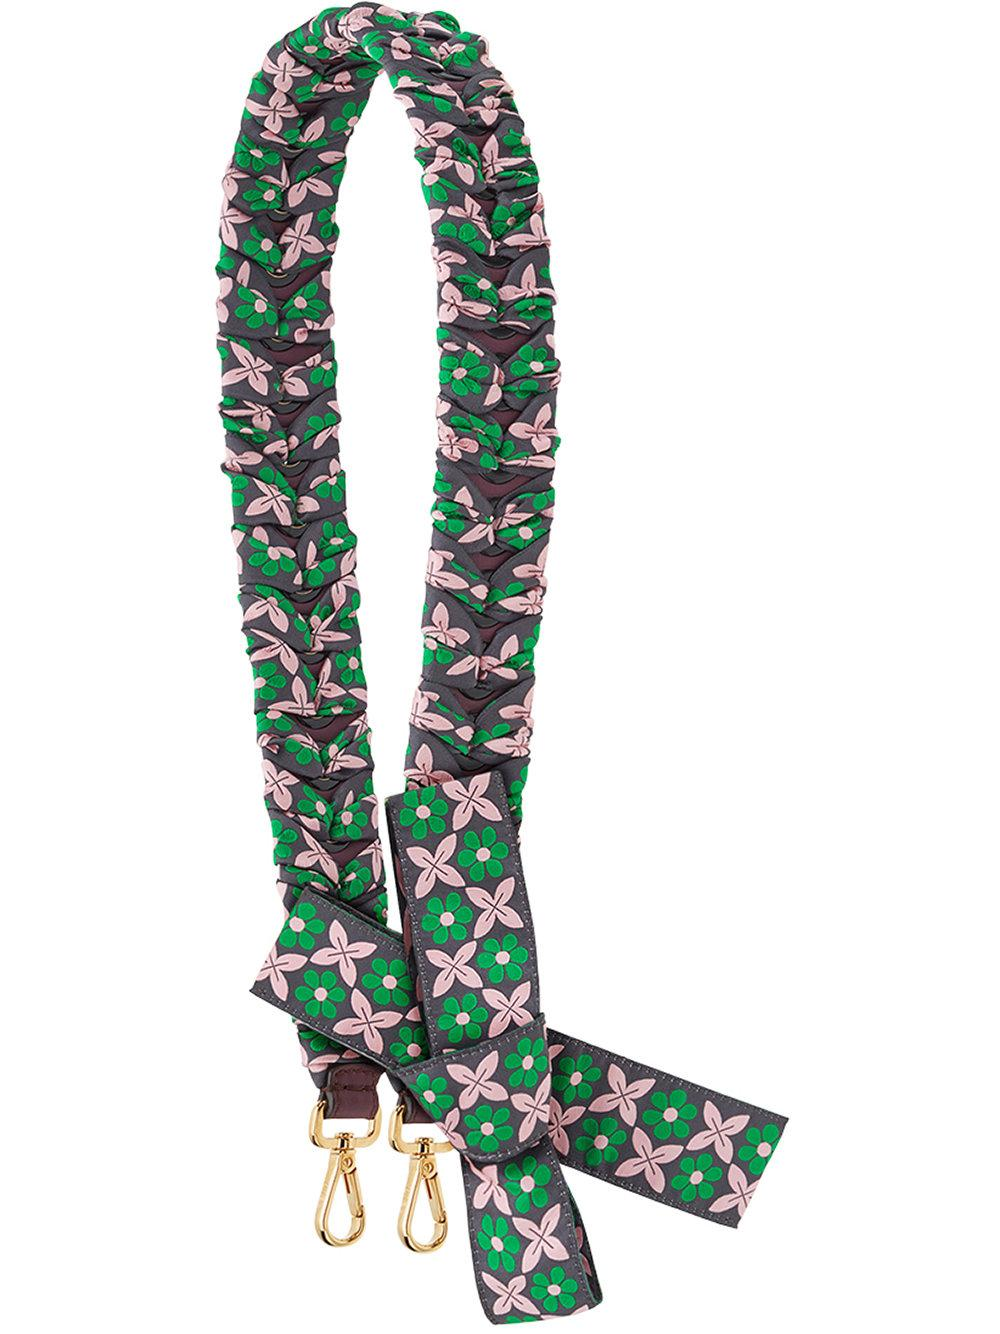 Fendi Strap You Floral Bag Strap In Multicolour